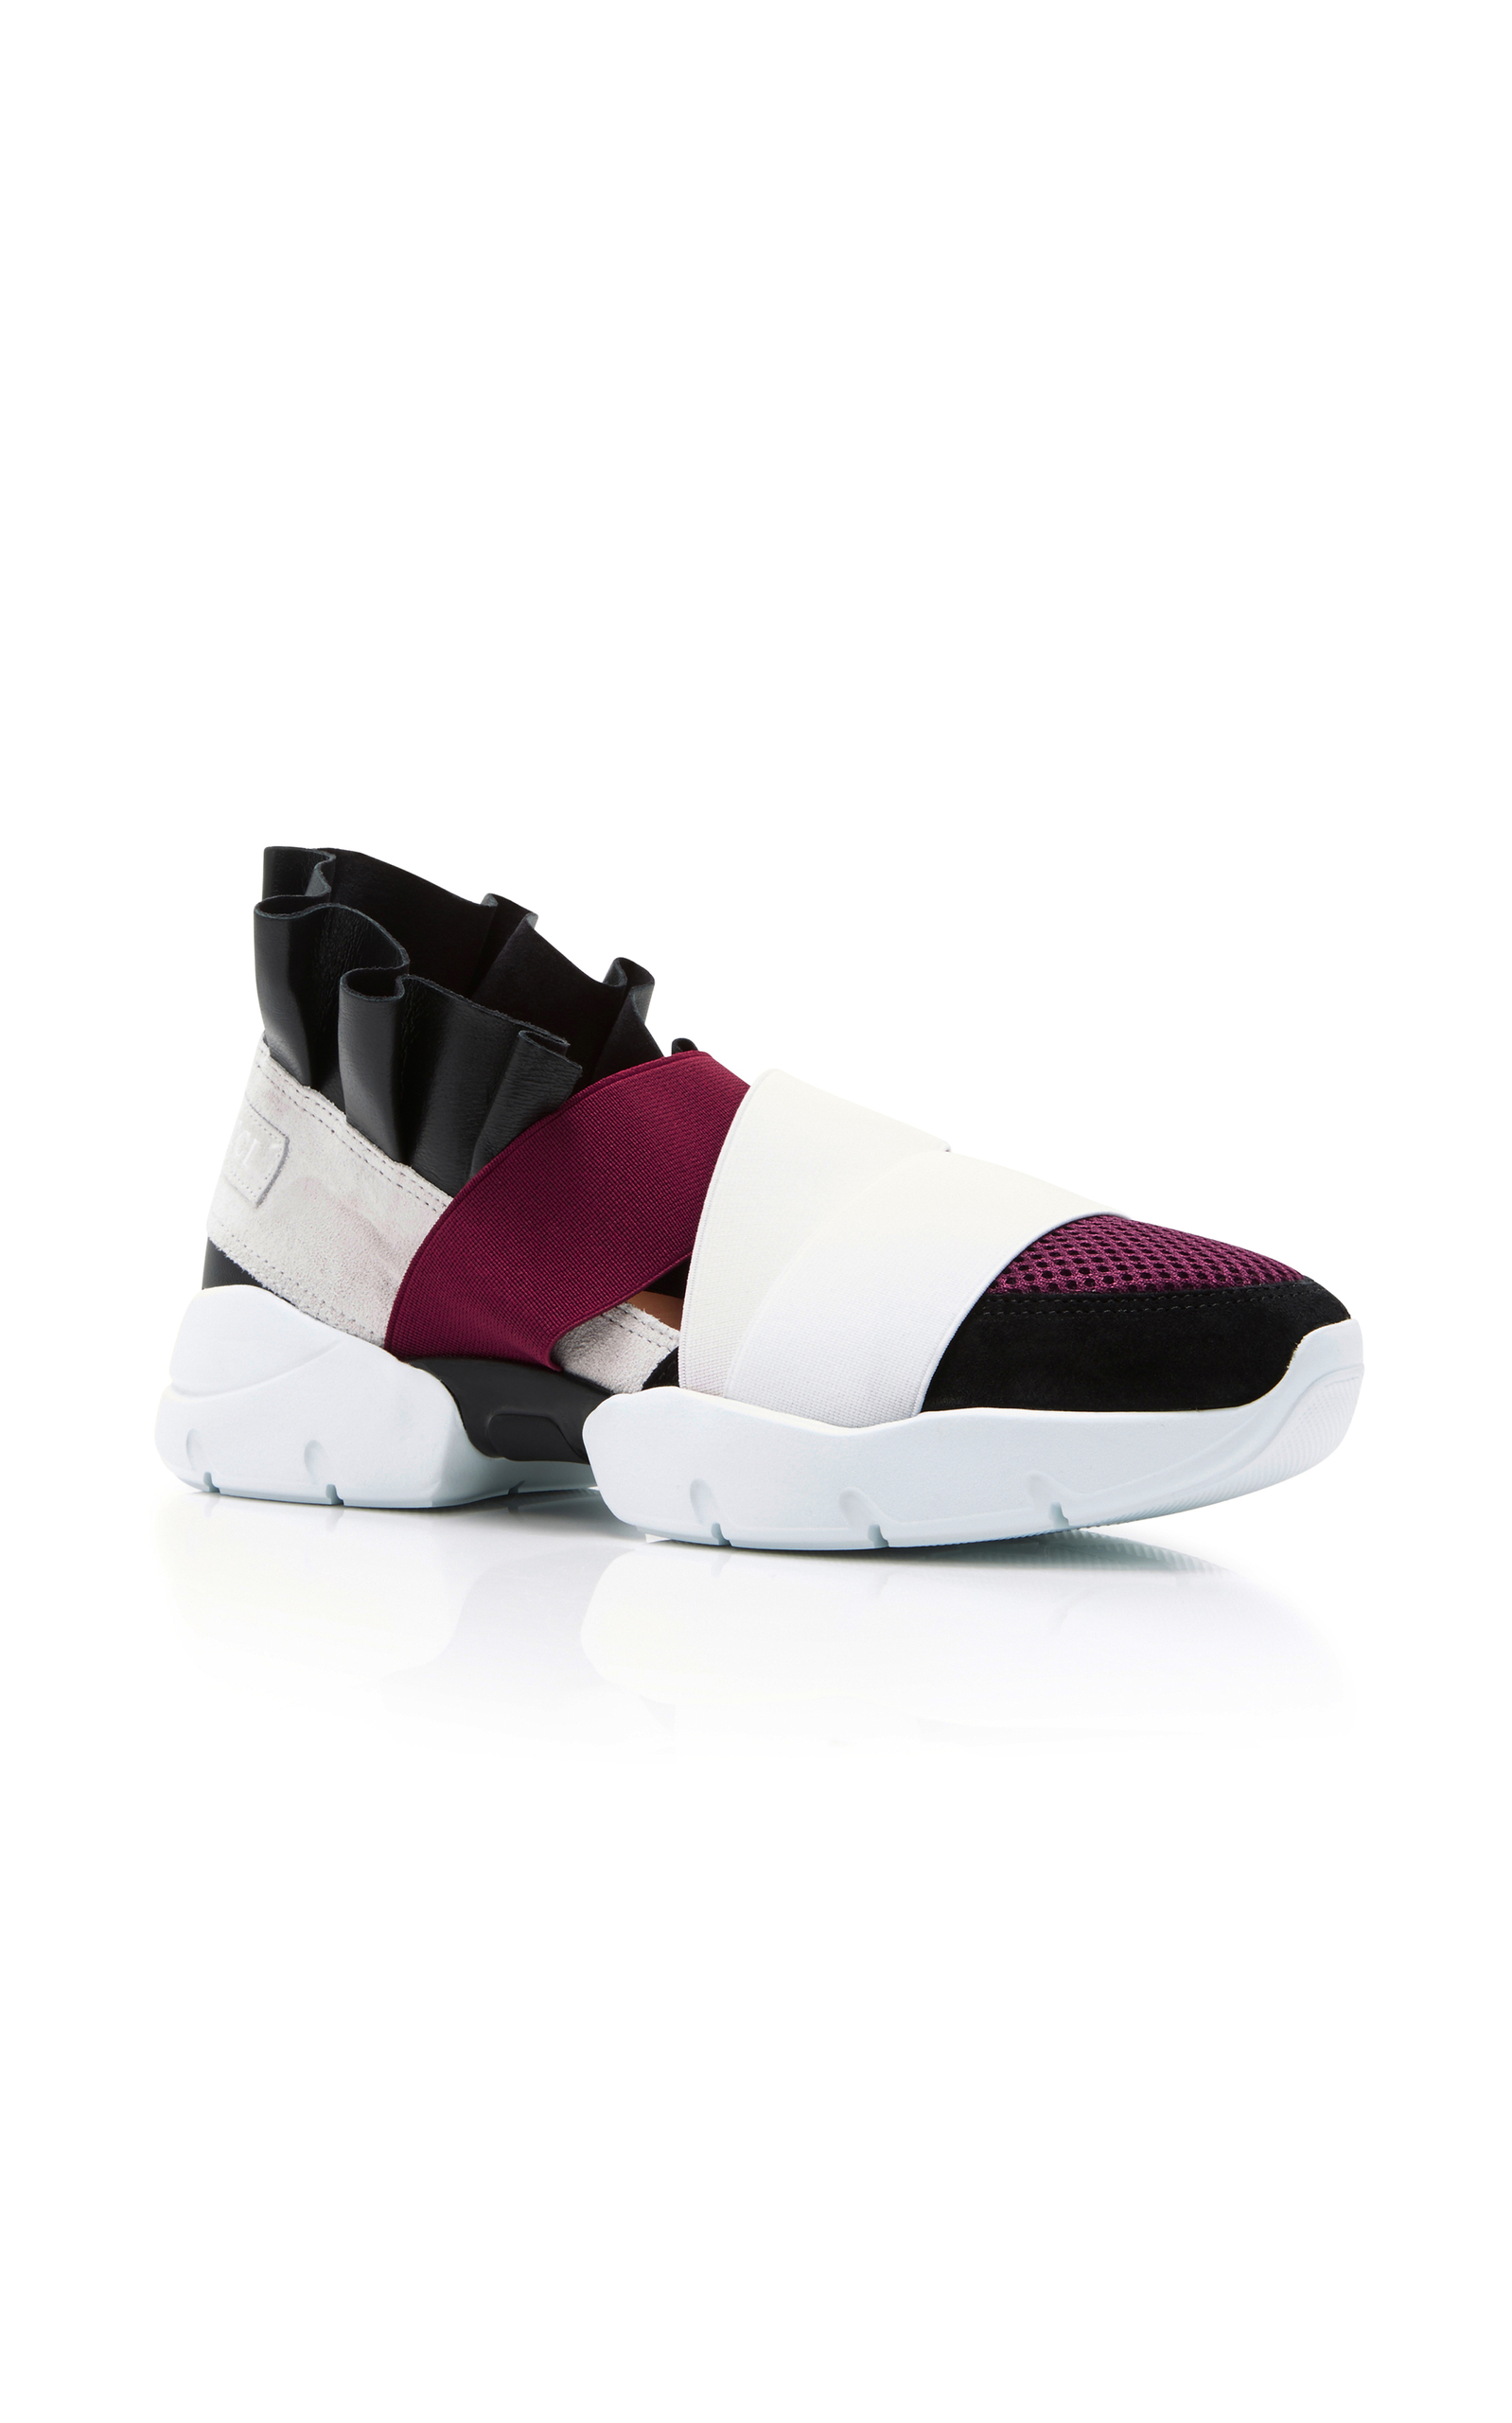 Black and Burgundy City Up Sneakers Emilio Pucci ACz3DairSu